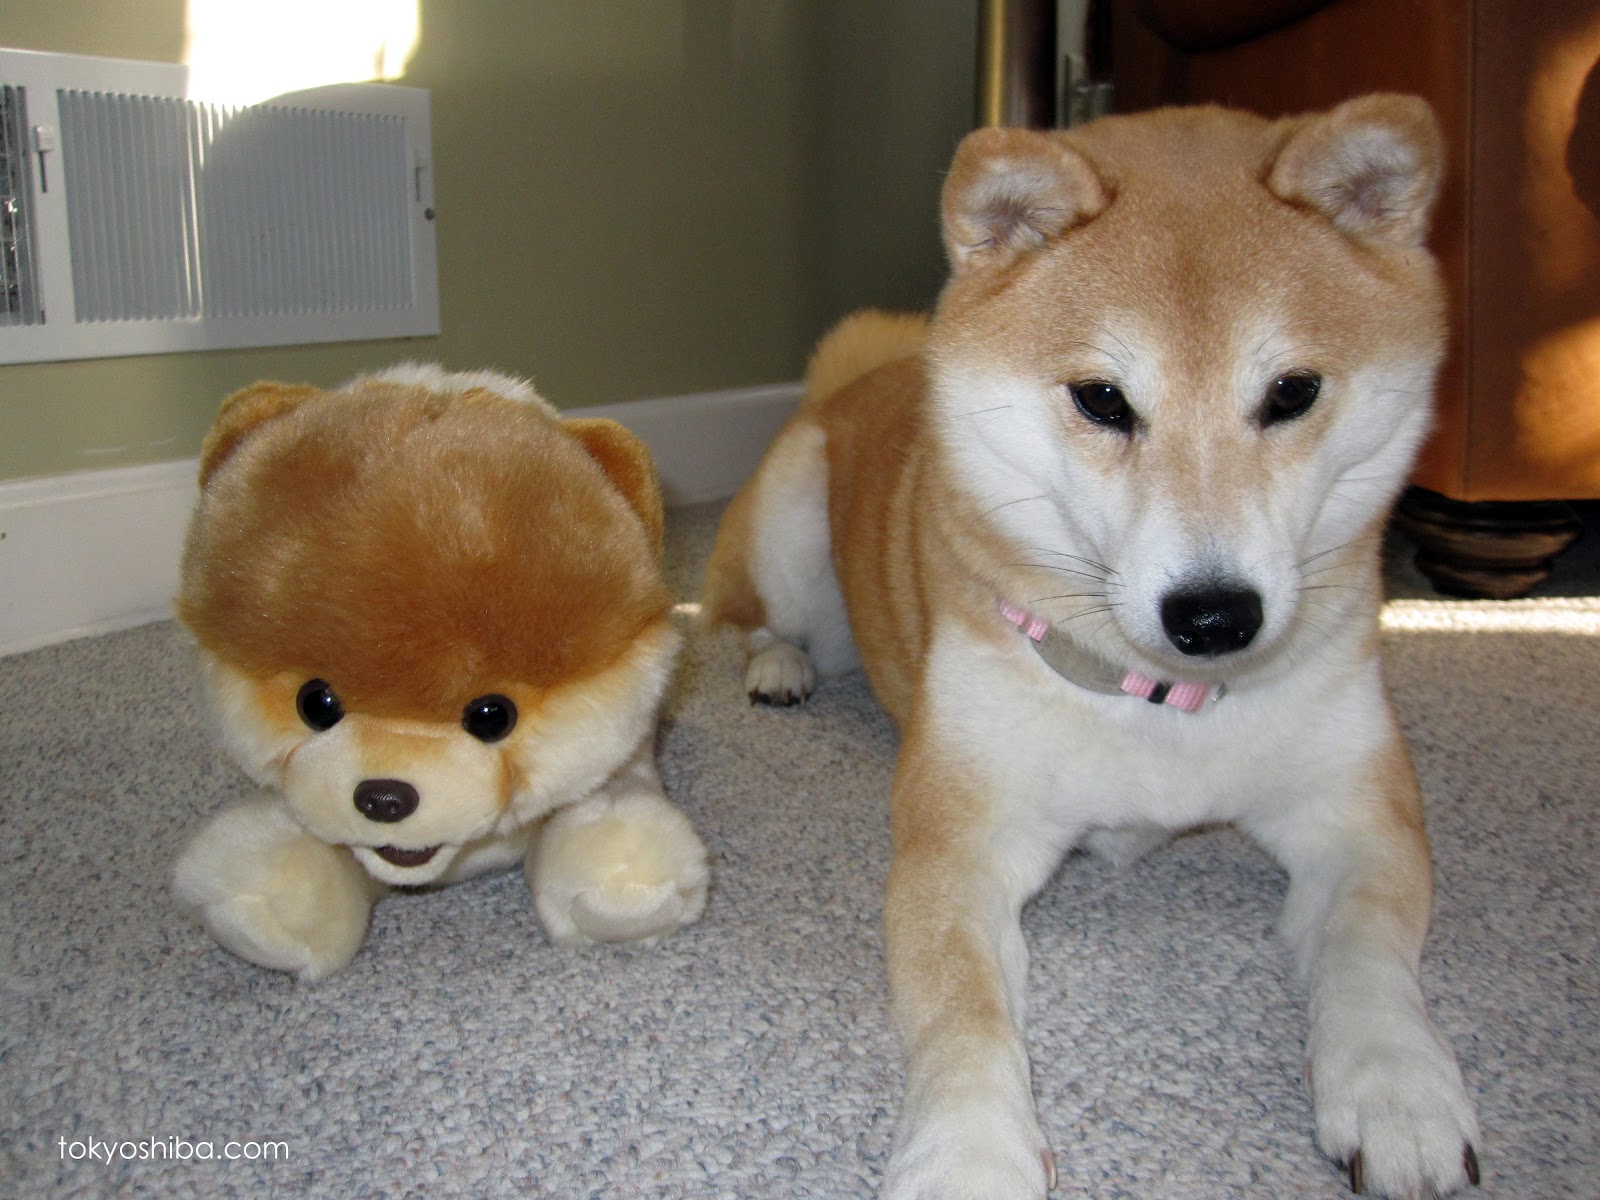 Dont Forget There Are Always More Pictures Of Me At Tokyo My Shiba Inu Tumblr And Be Sure To Follow On Twitter Tokyoshiba